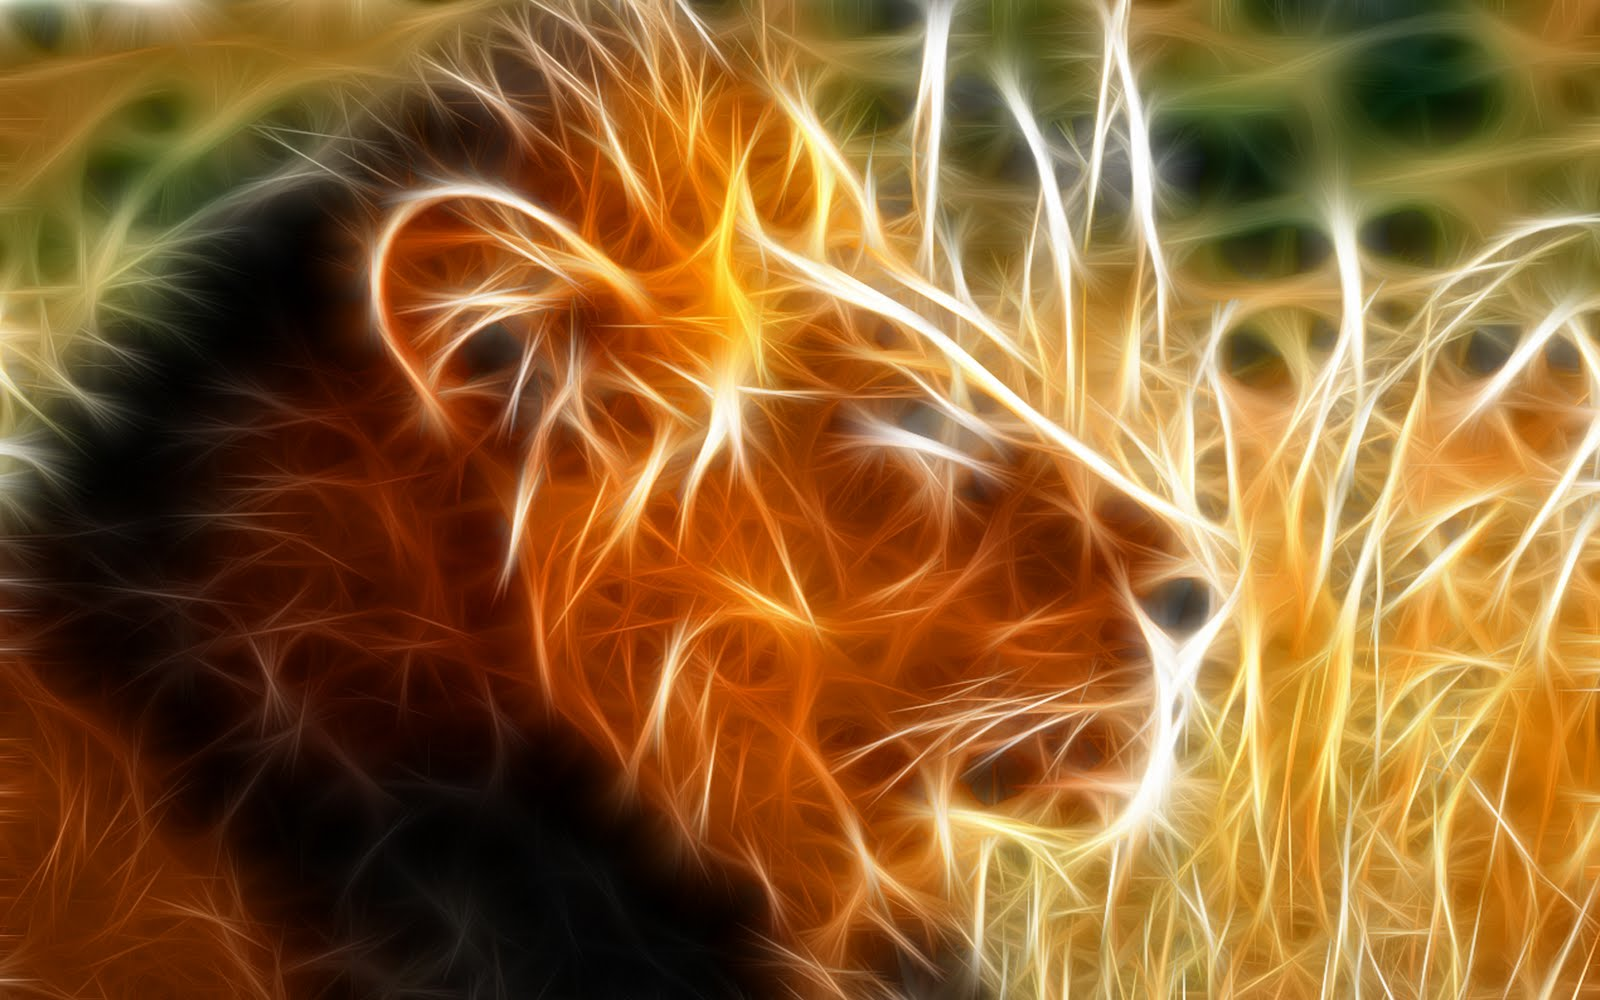 http://4.bp.blogspot.com/_fGfxzT8Q-4U/S8-B3FRfZuI/AAAAAAAAAWM/7ZO9fyGL7t8/s1600/The_King_lion_hd_wallpapers.jpg